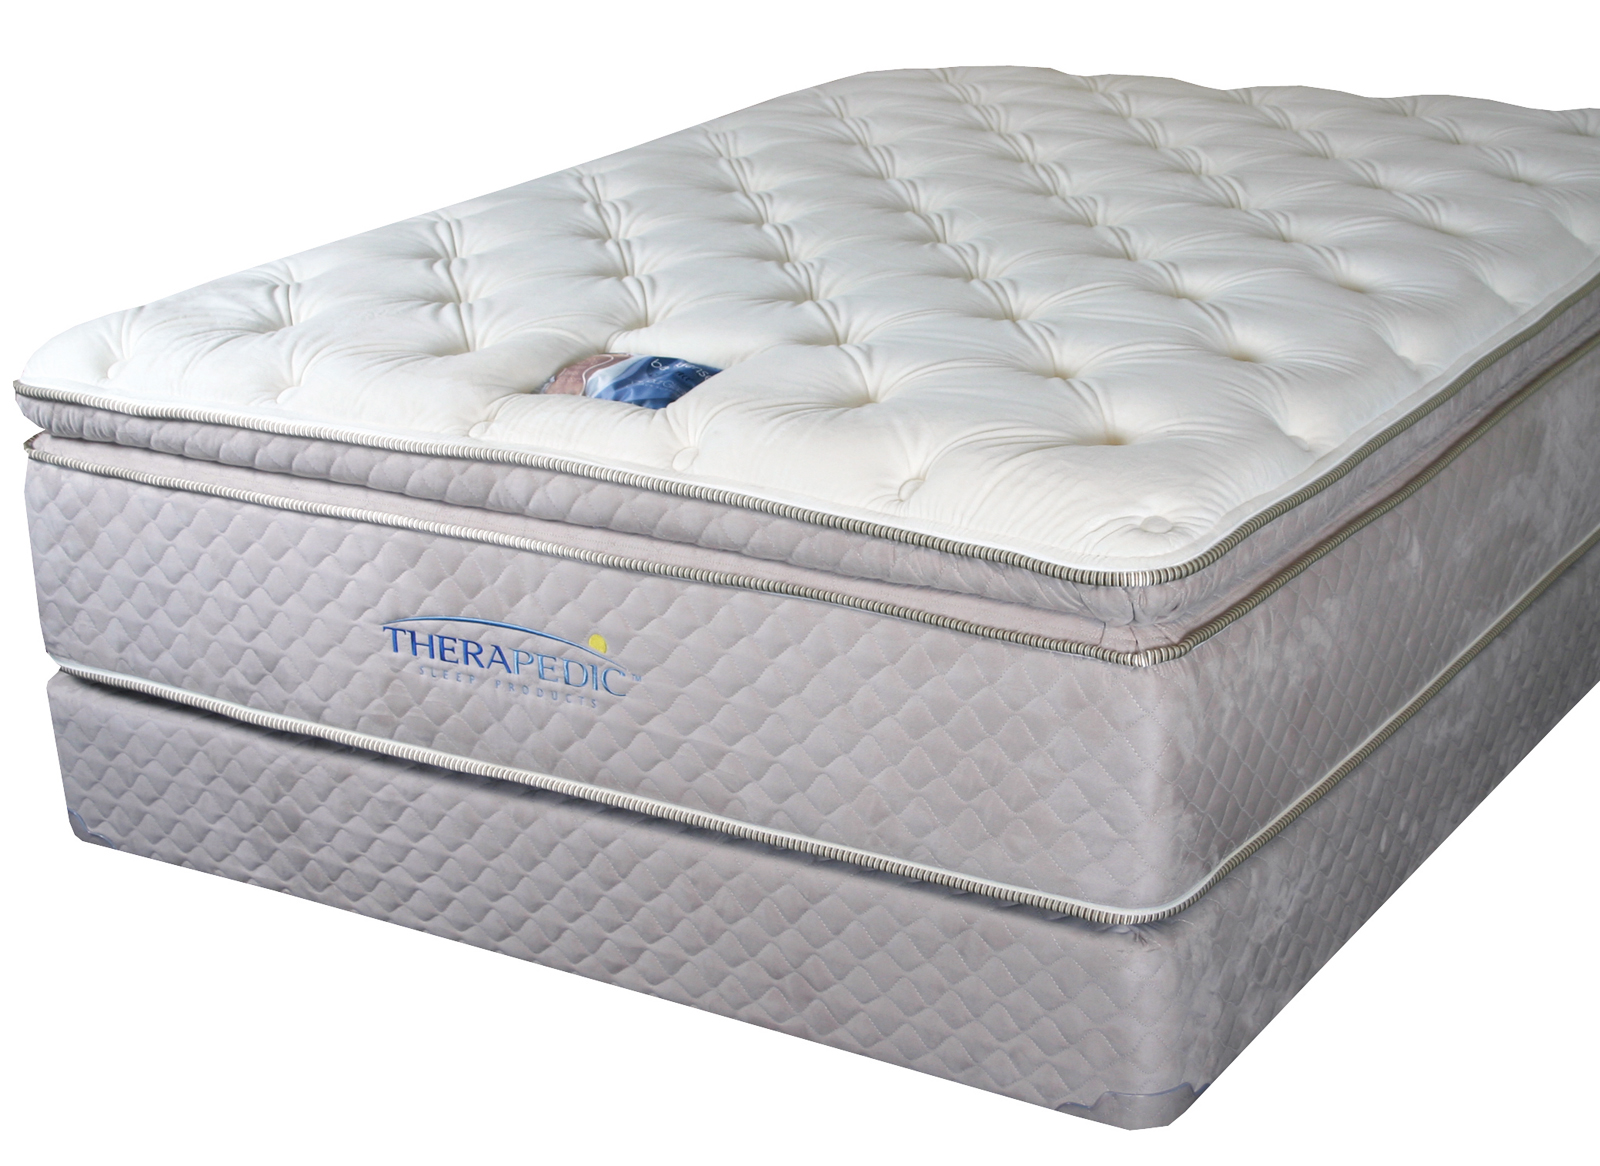 Serta Icomfort Reviews >> Therapedic BackSense Pillow Top Mattresses